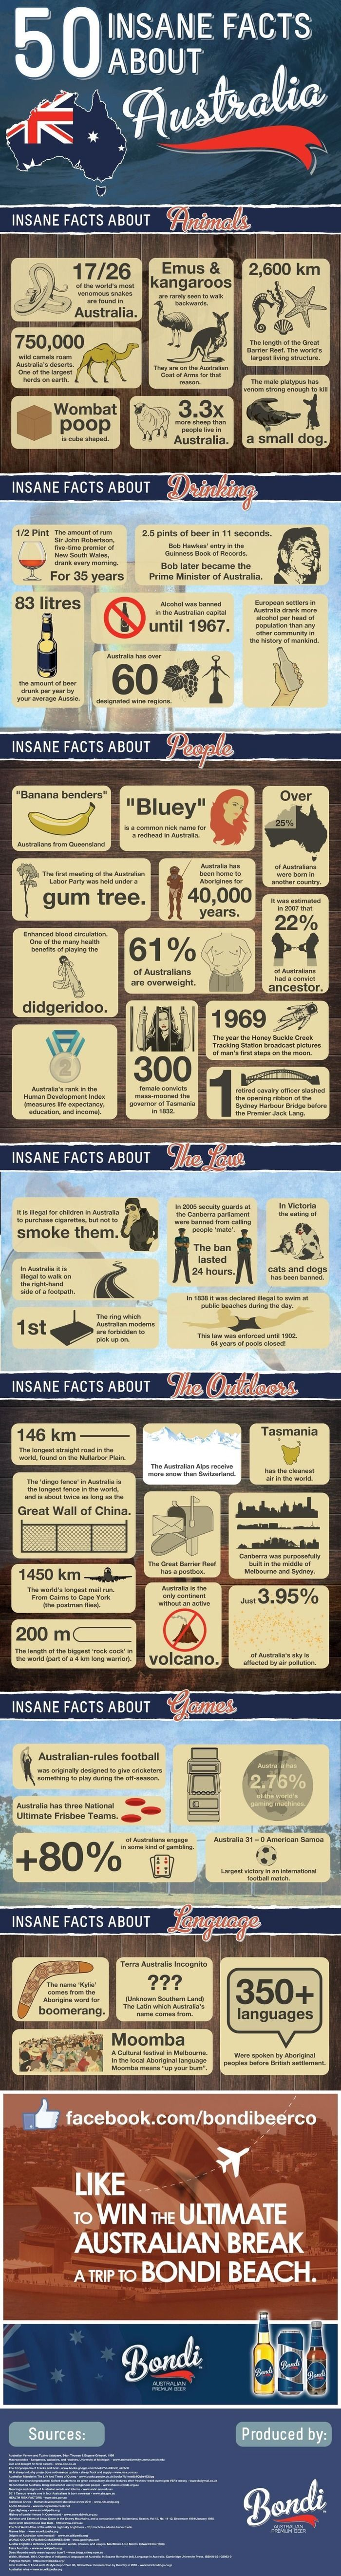 Here is a quality and very interesting infographic by premium Australian Beer company Bondi packed with facts about Australia. The infographic has facts about Australian animals, drinking, people, ...